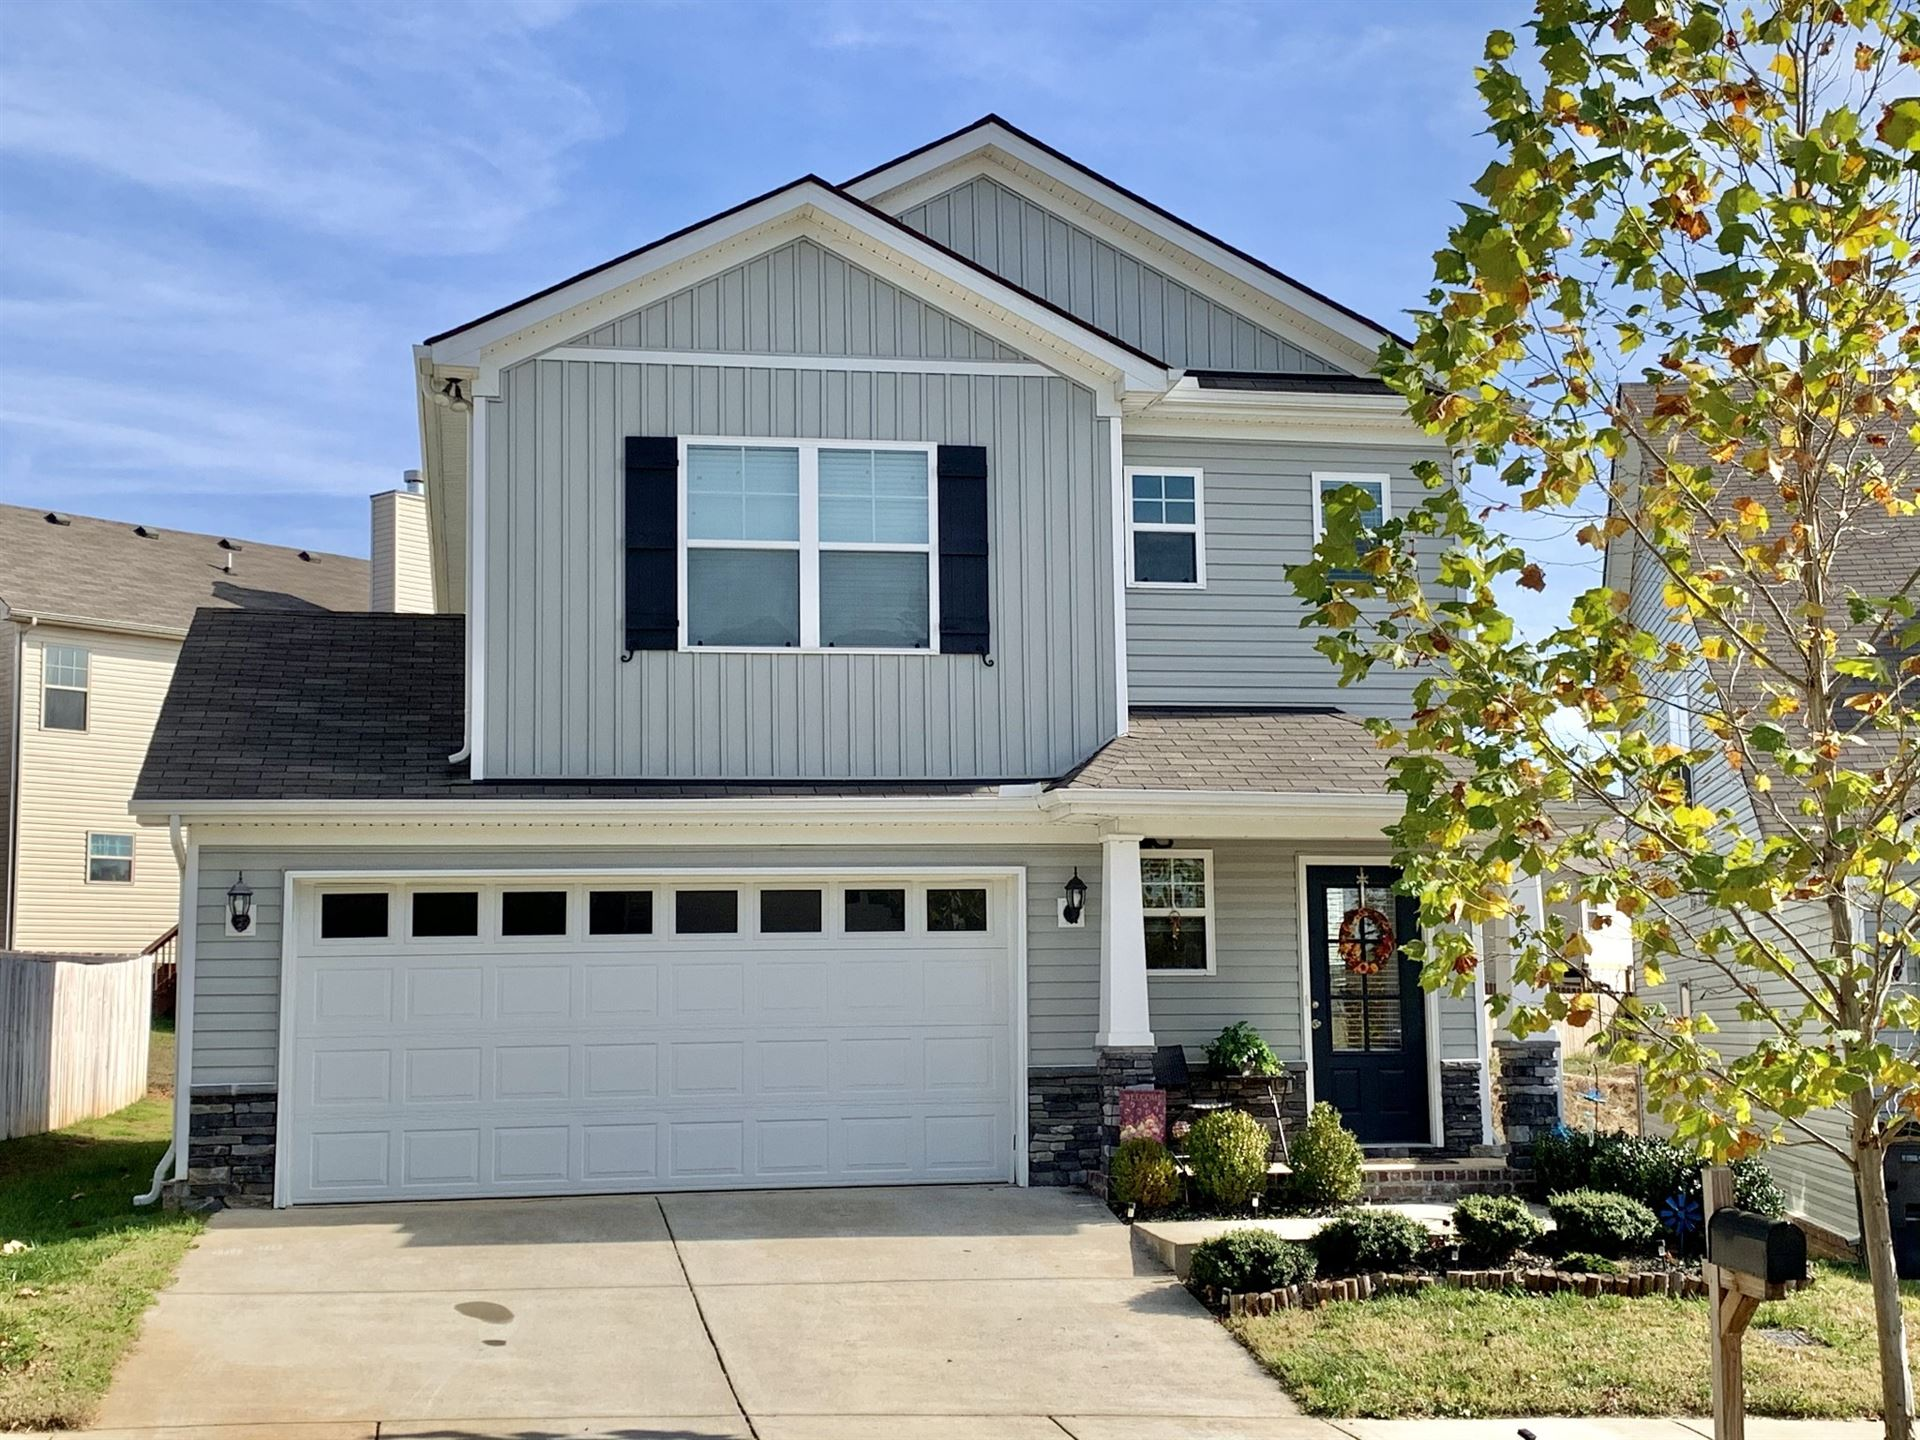 7512 Spicer Ct, Fairview, TN 37062 - MLS#: 2208879